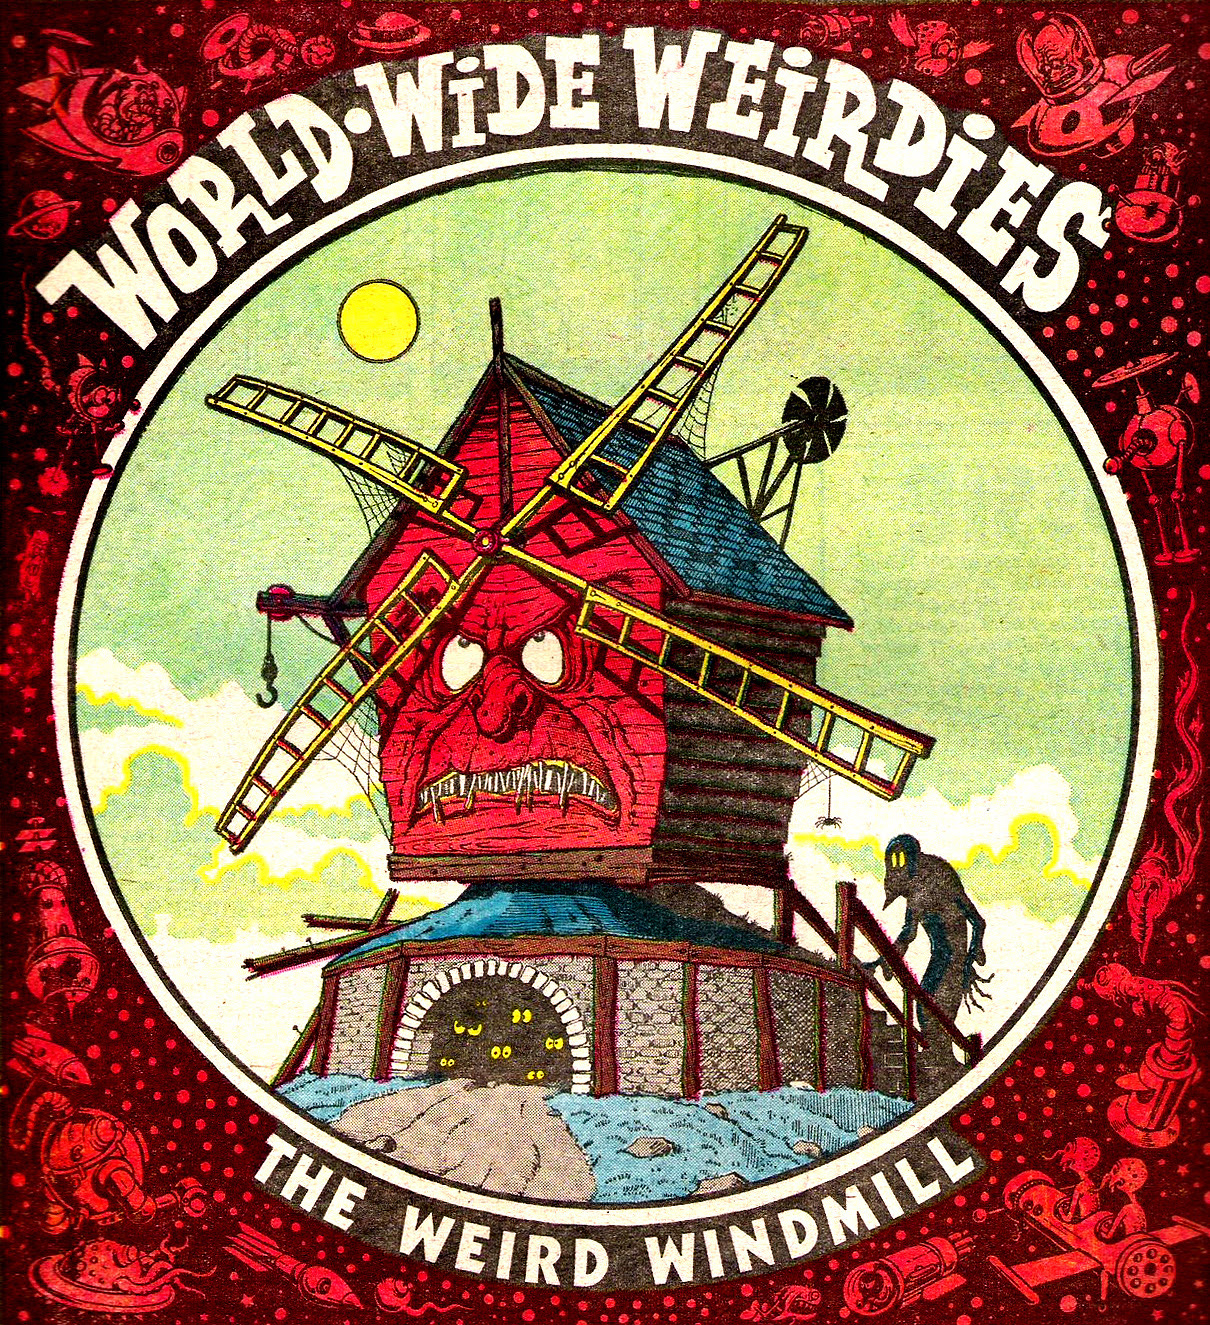 Ken Reid - World Wide Weirdies 68